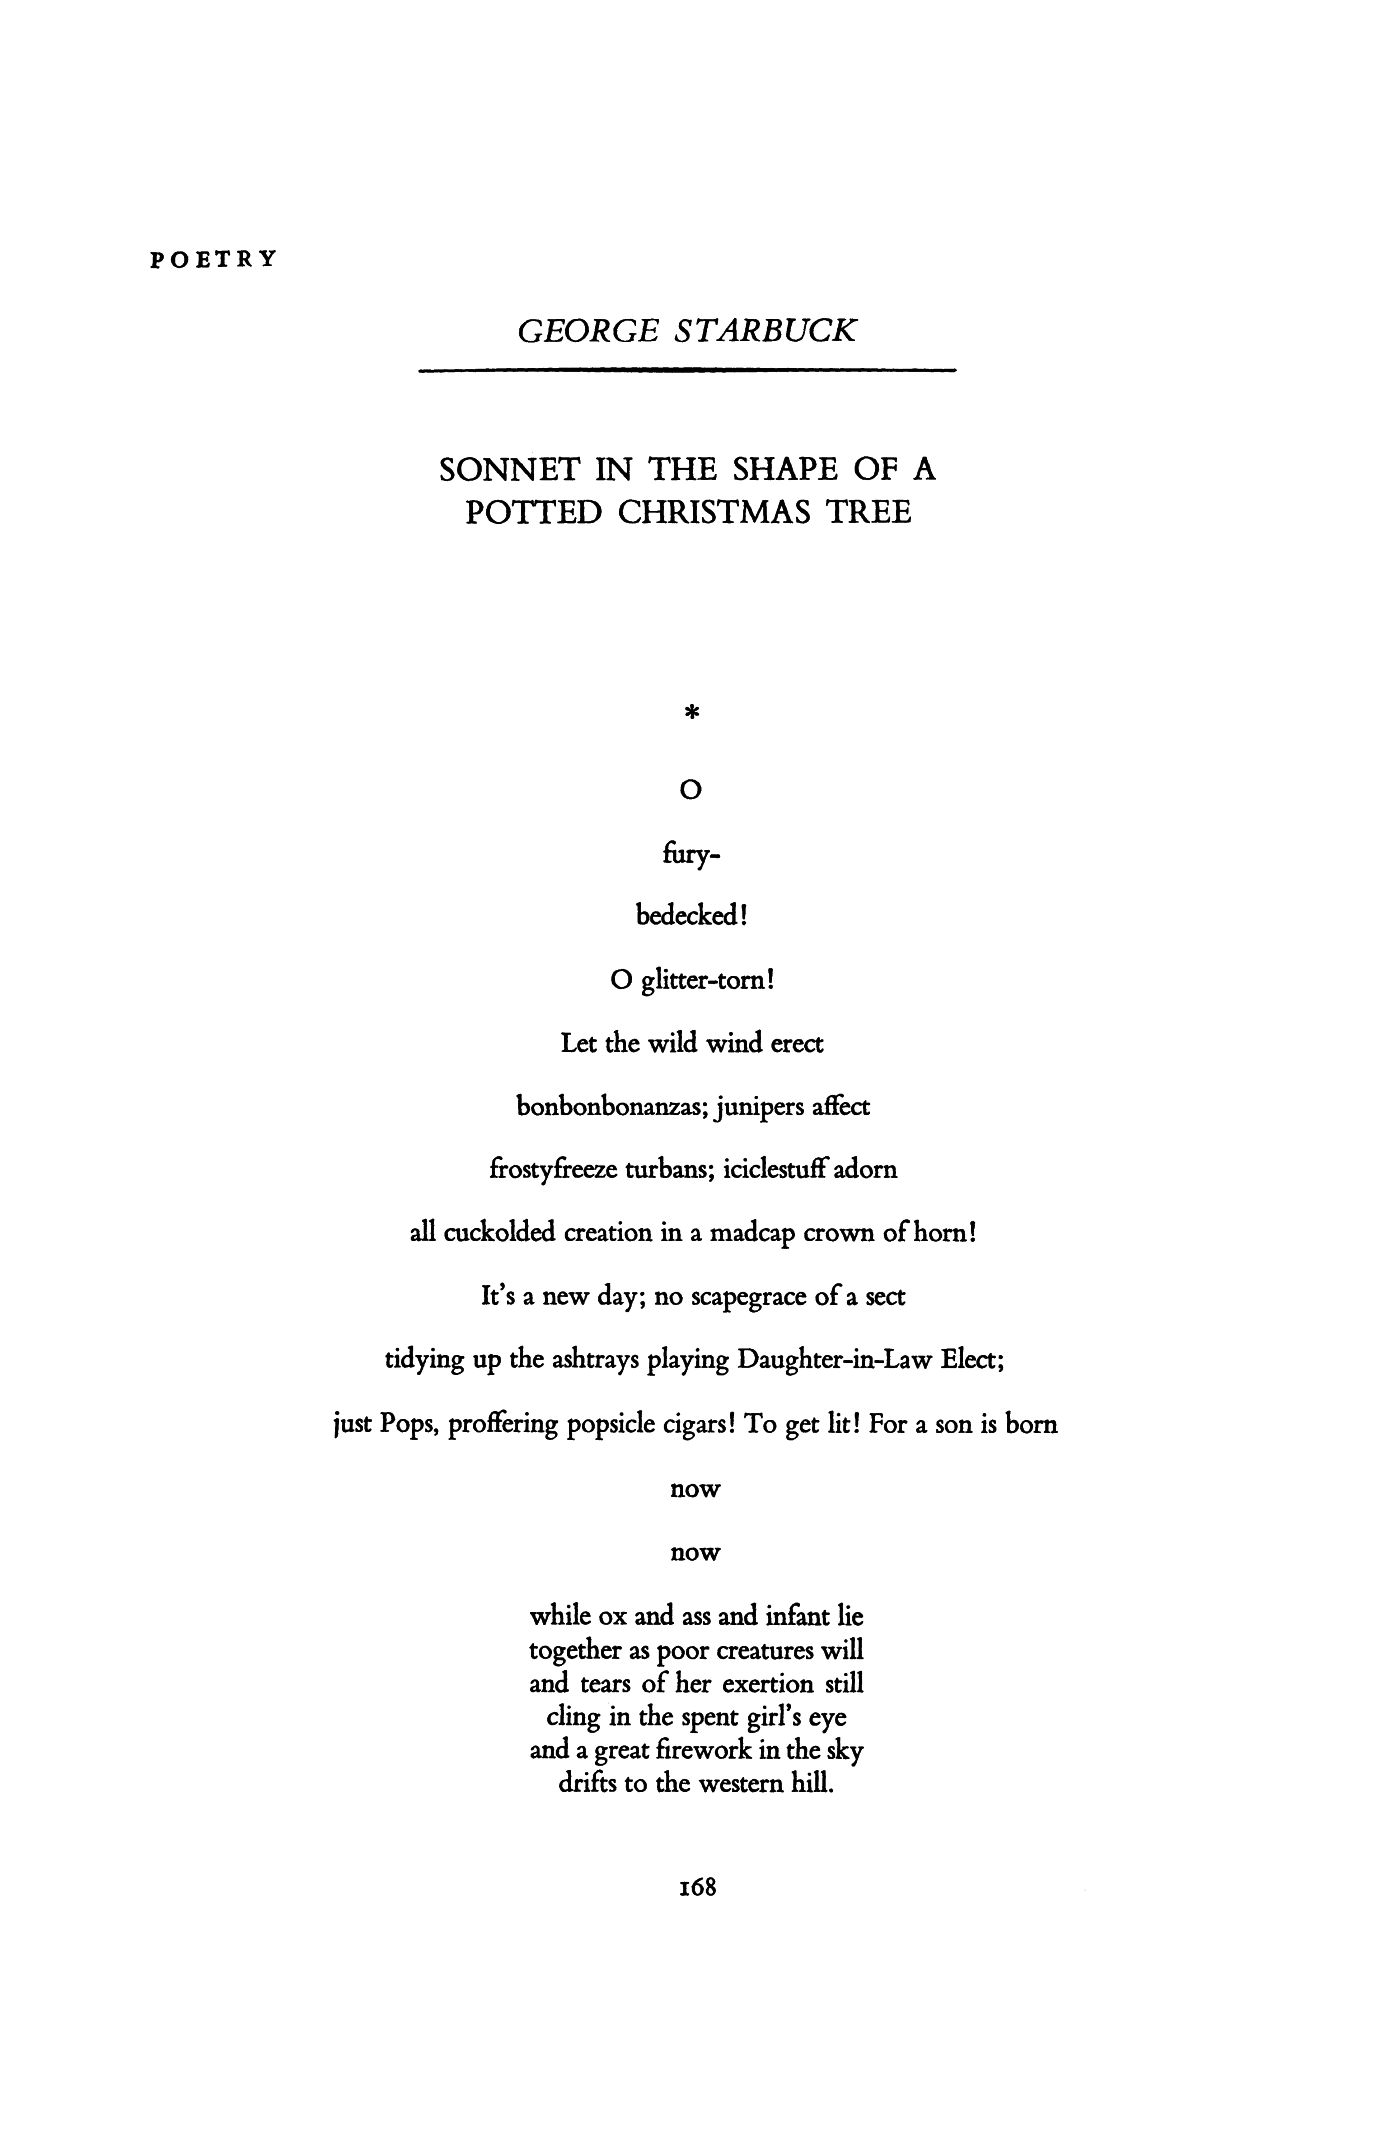 Sonnet in the Shape of a Potted Christmas Tree by George Starbuck ...